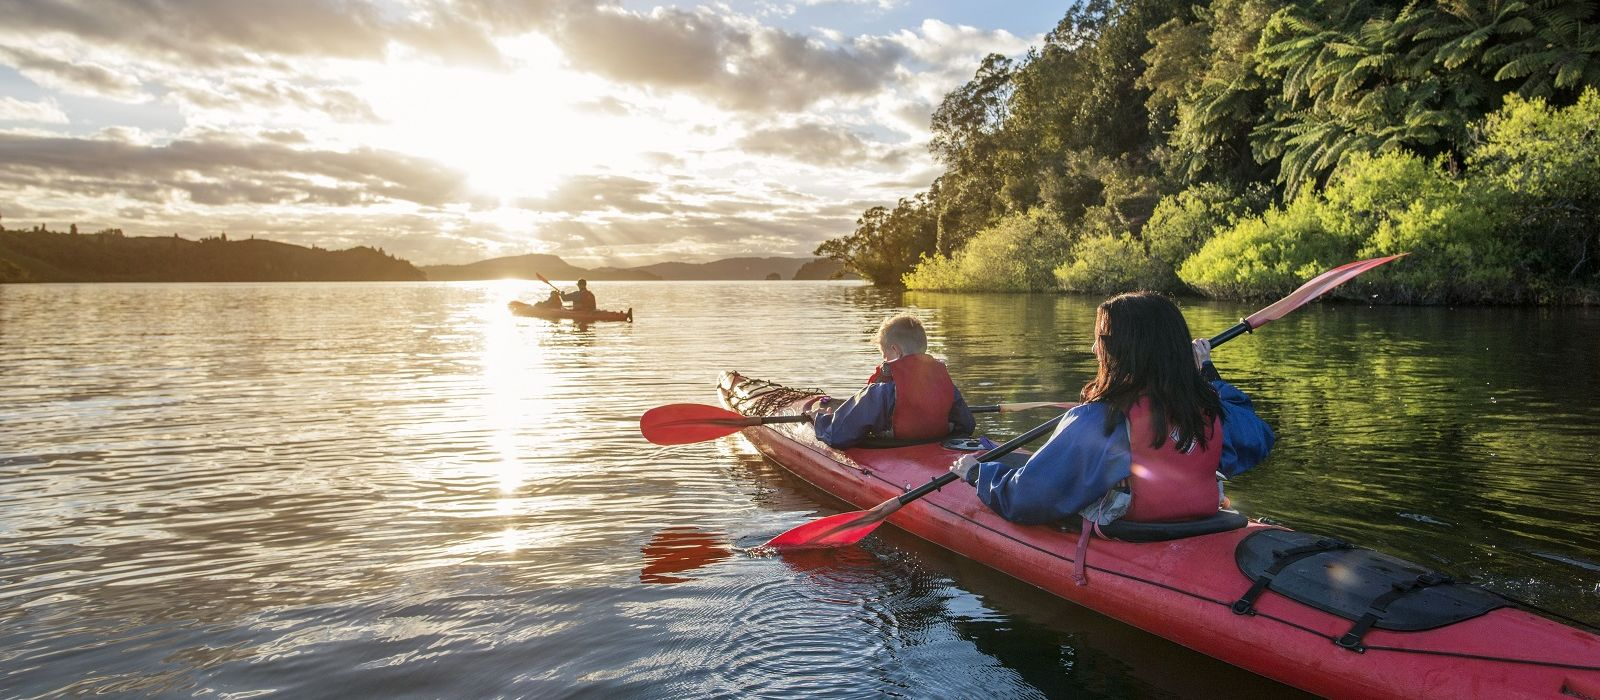 New Zealand: Highlights of the North and South Islands Tour Trip 1